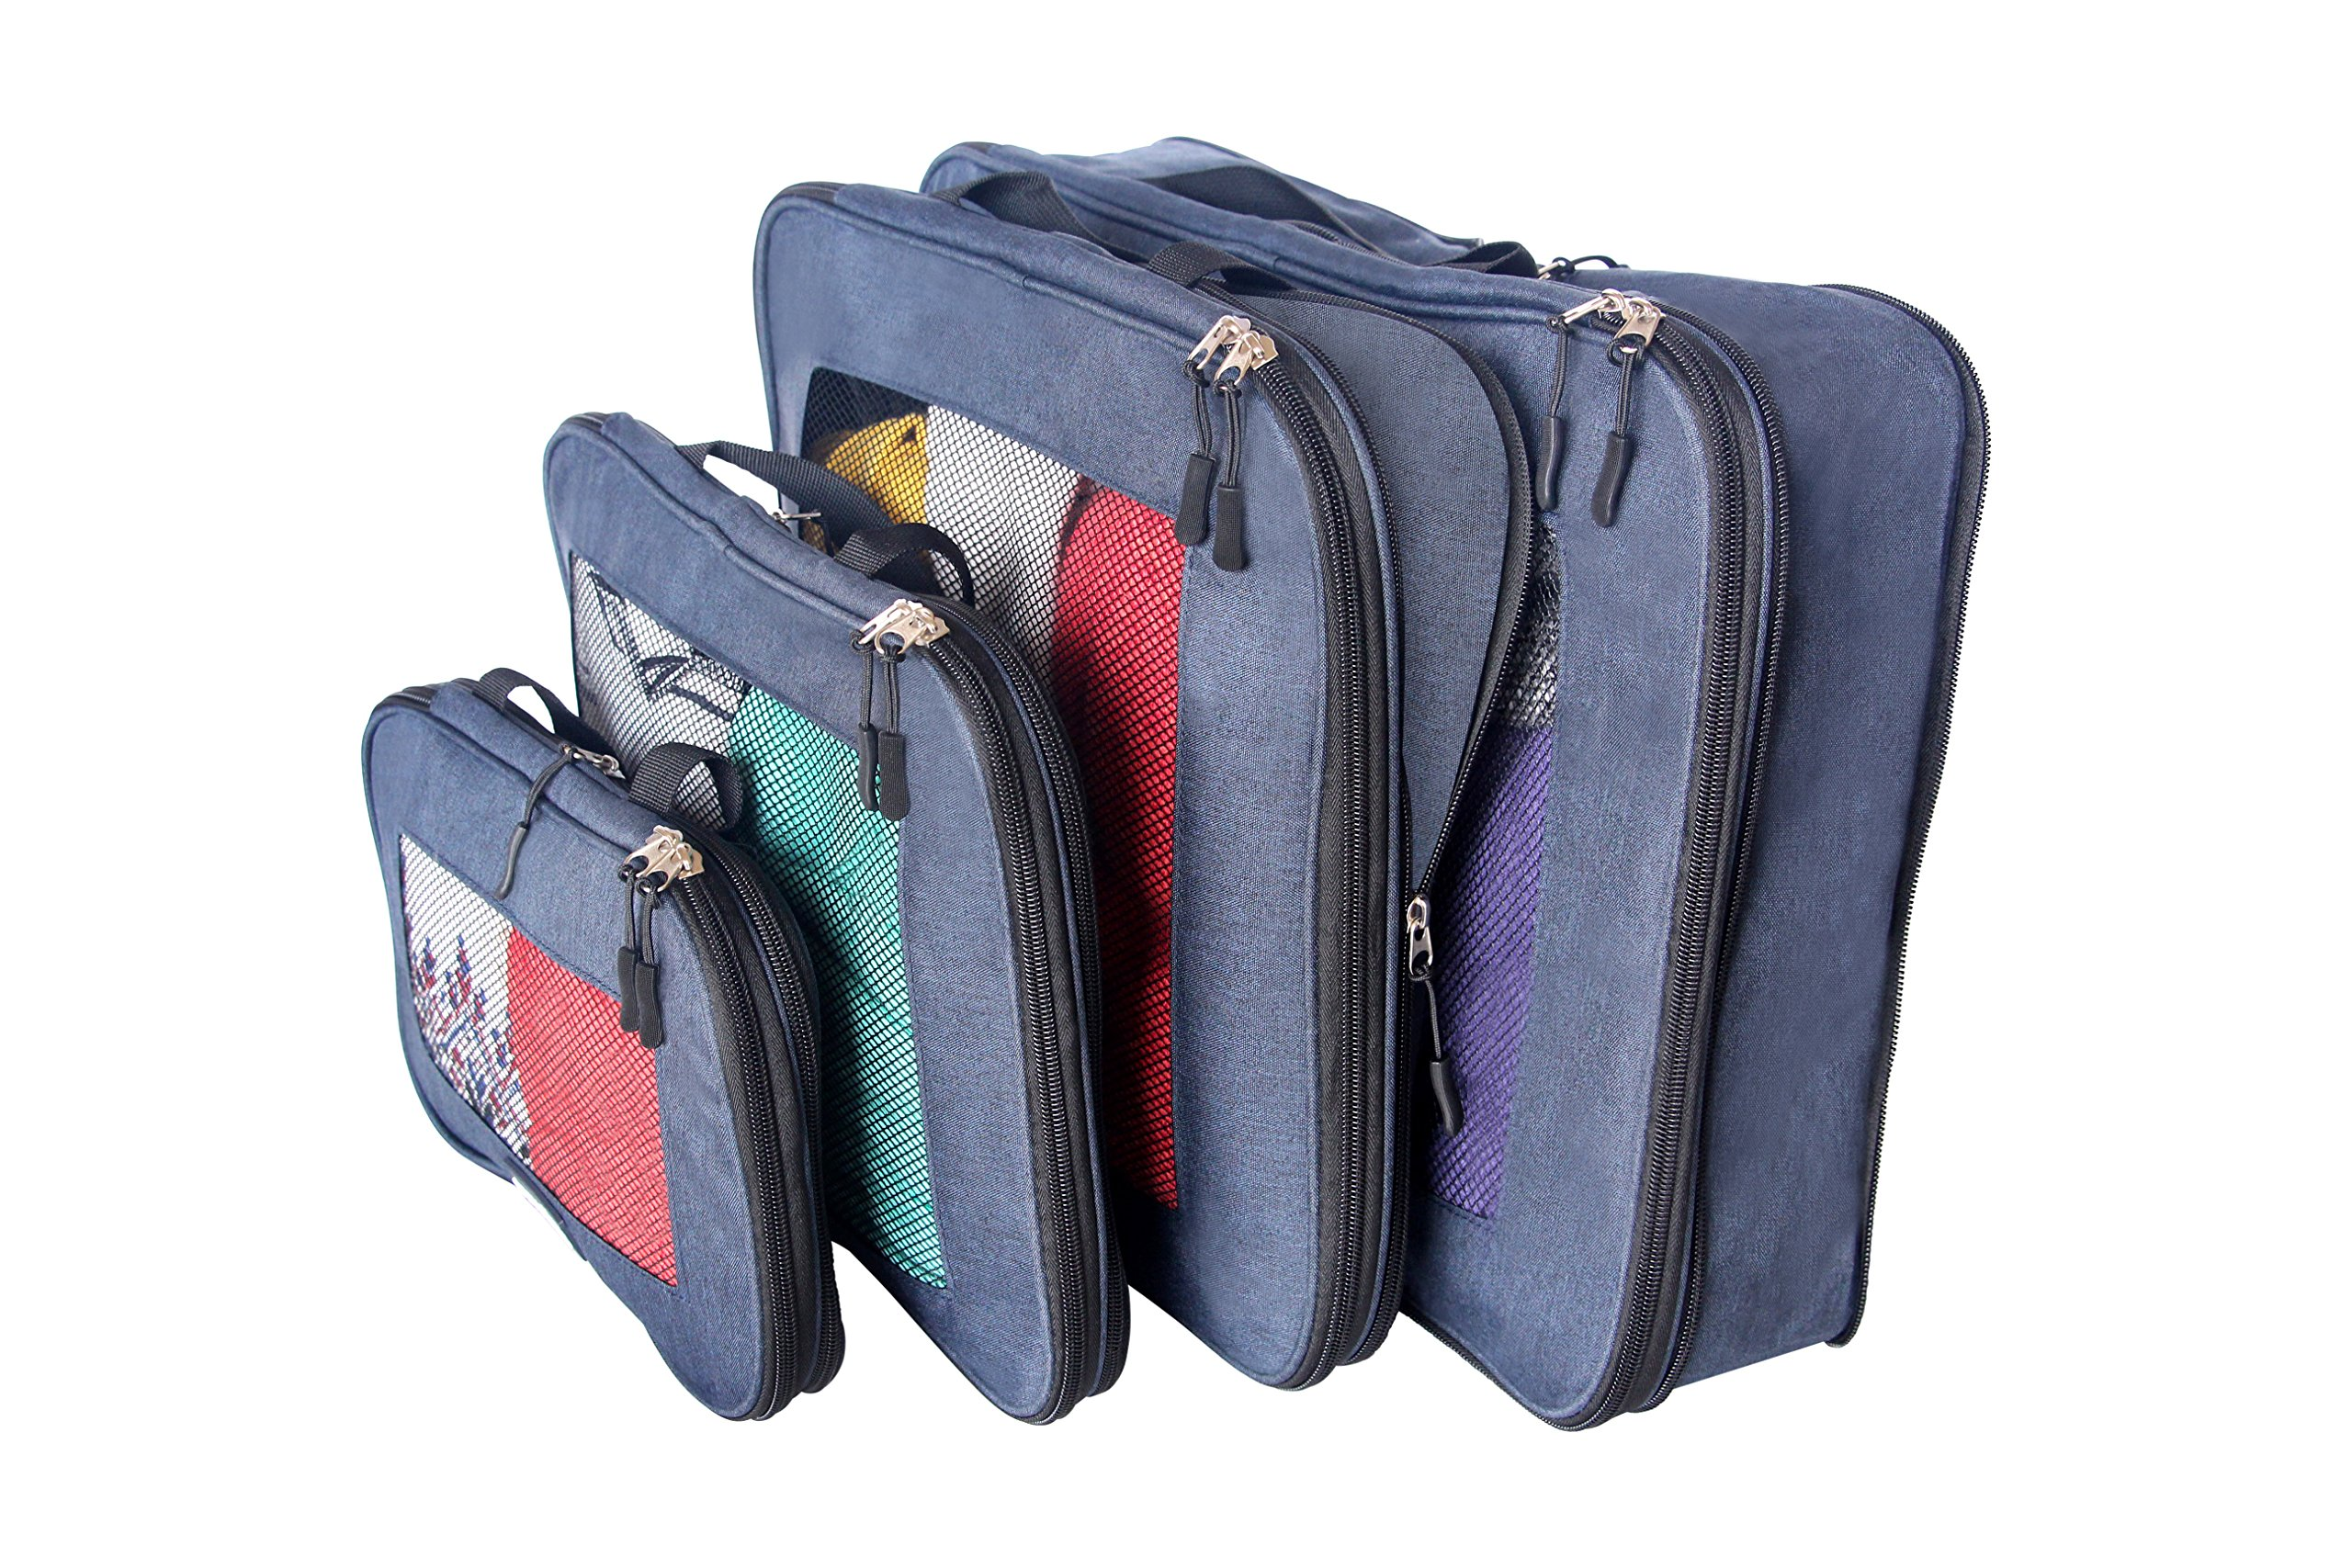 travelbug Compression Packing Cubes Set of 4 (Small, Medium, Large, and Extra Large) | Compresses to fit More in Less Space | Luggage Organizer for Travel (Dark Blue)